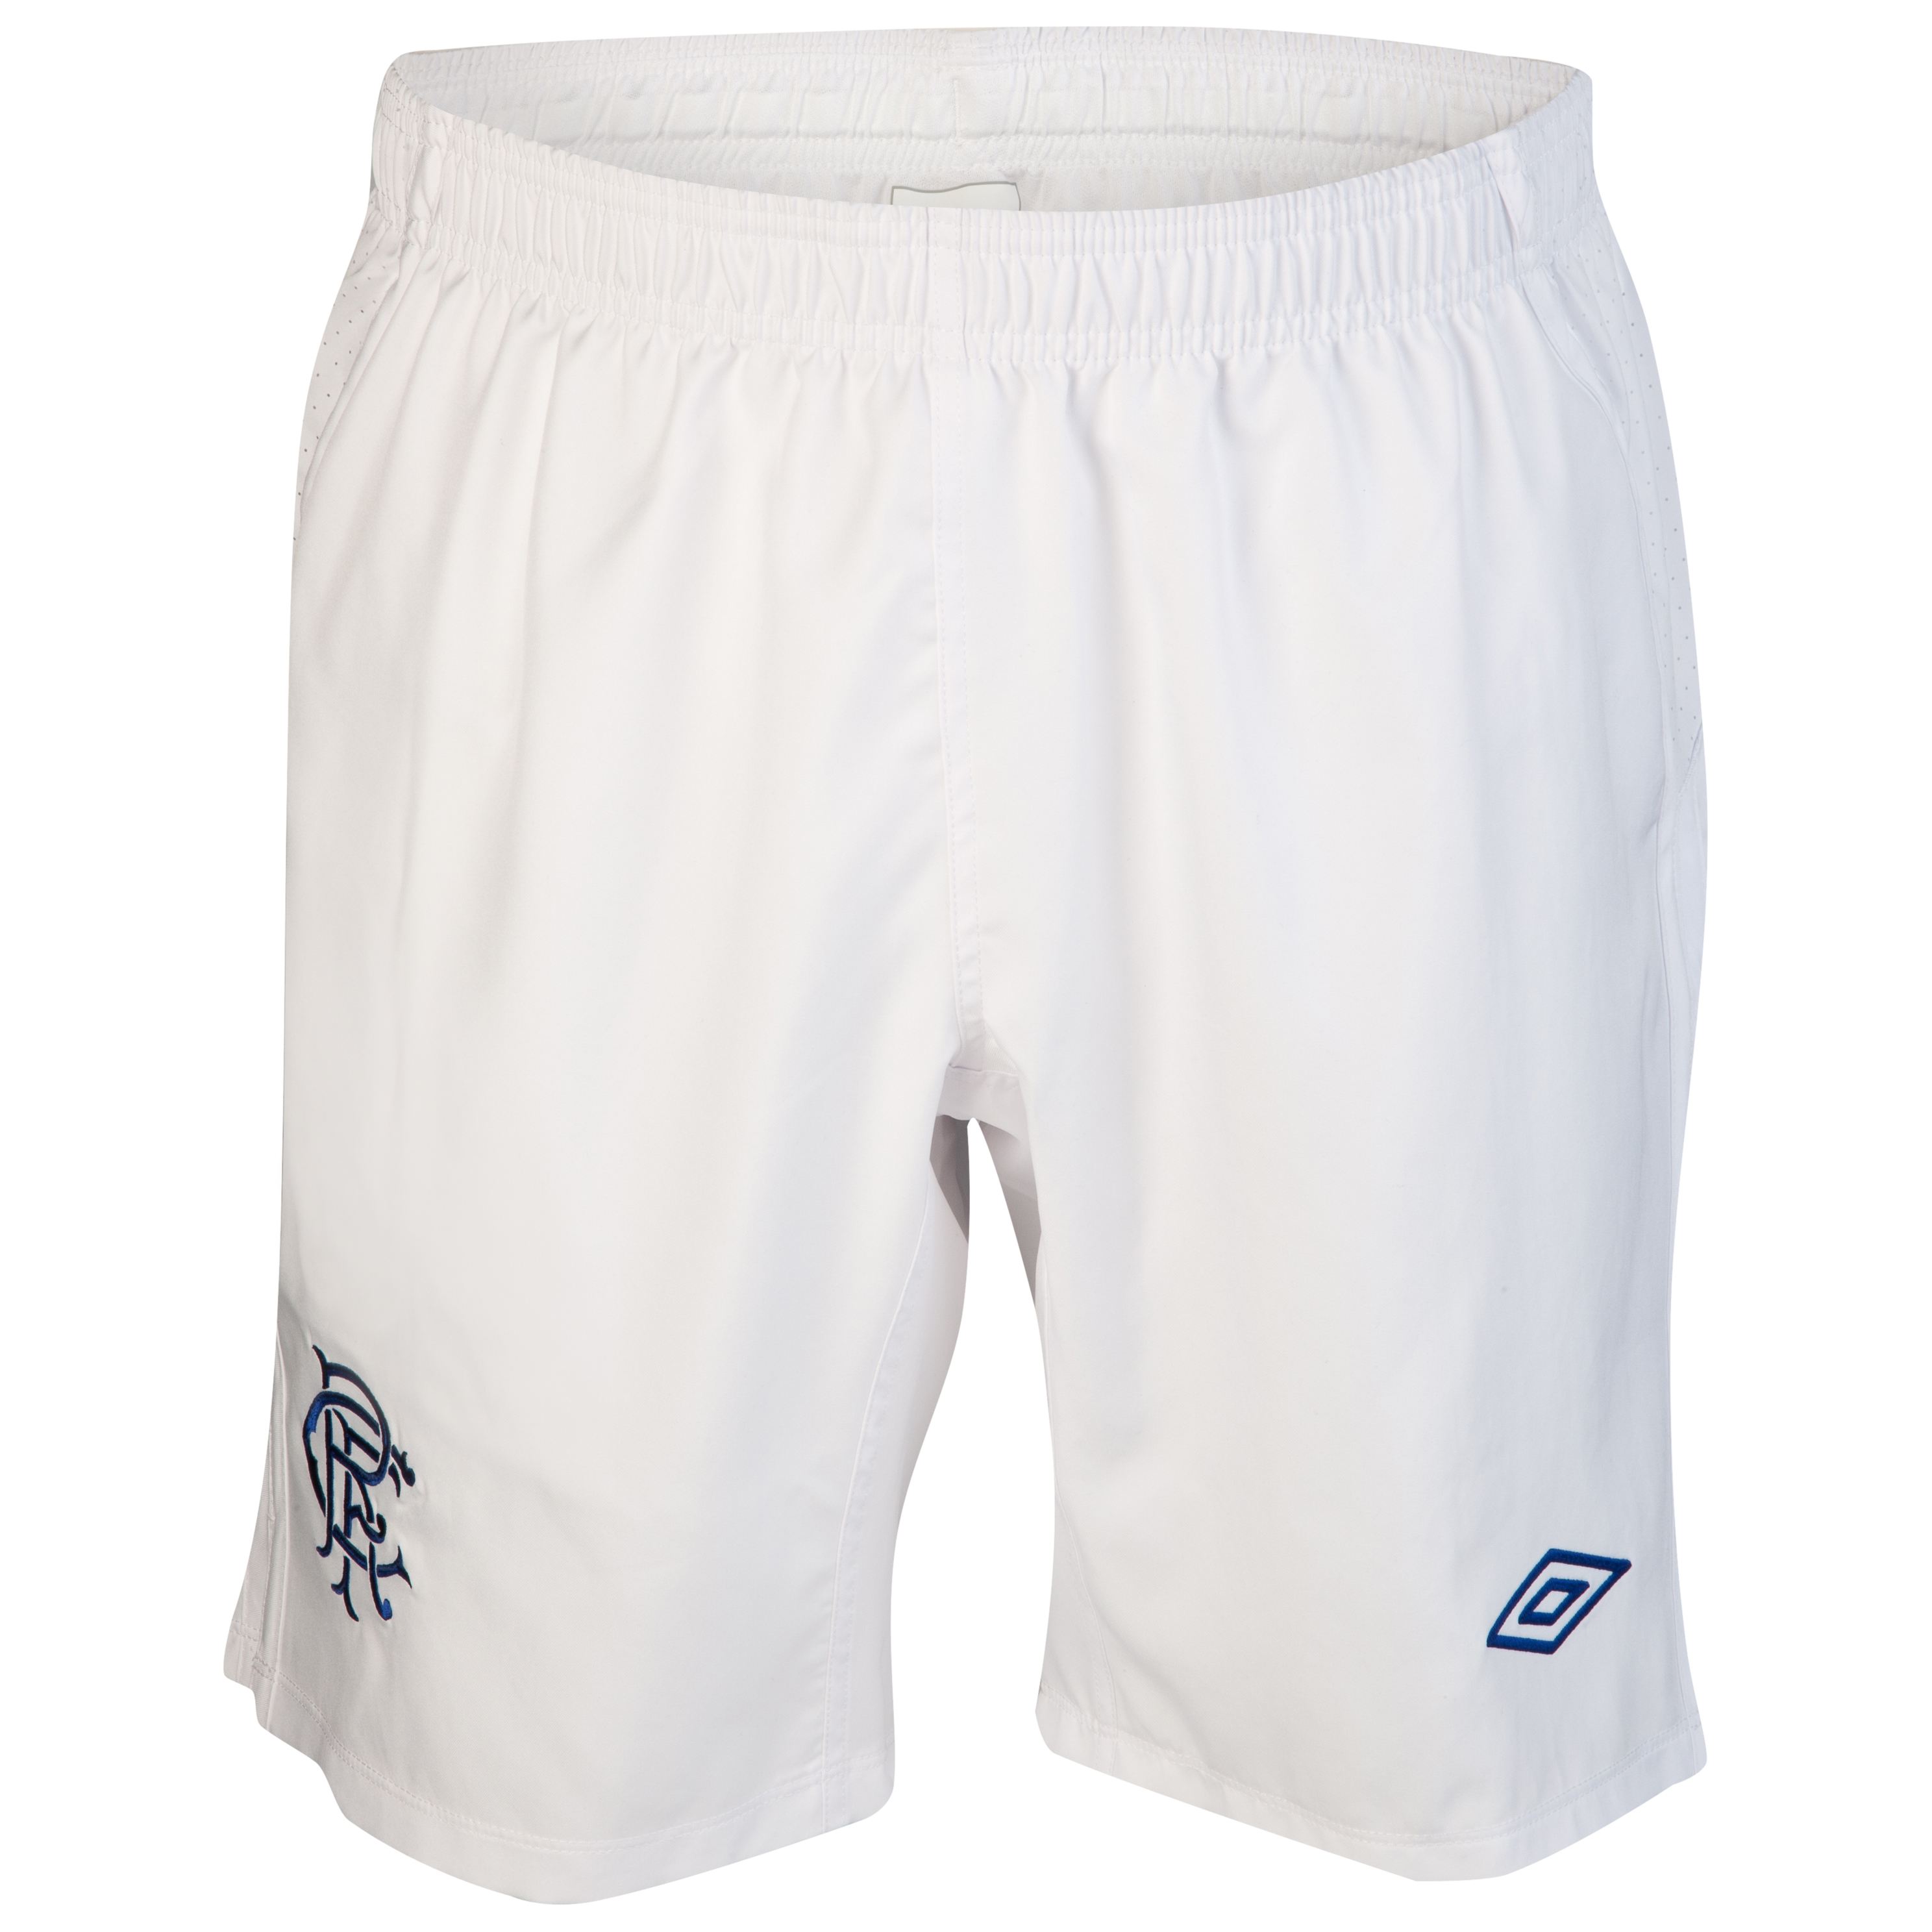 Glasgow Rangers Home Shorts 2012/13 - Kids